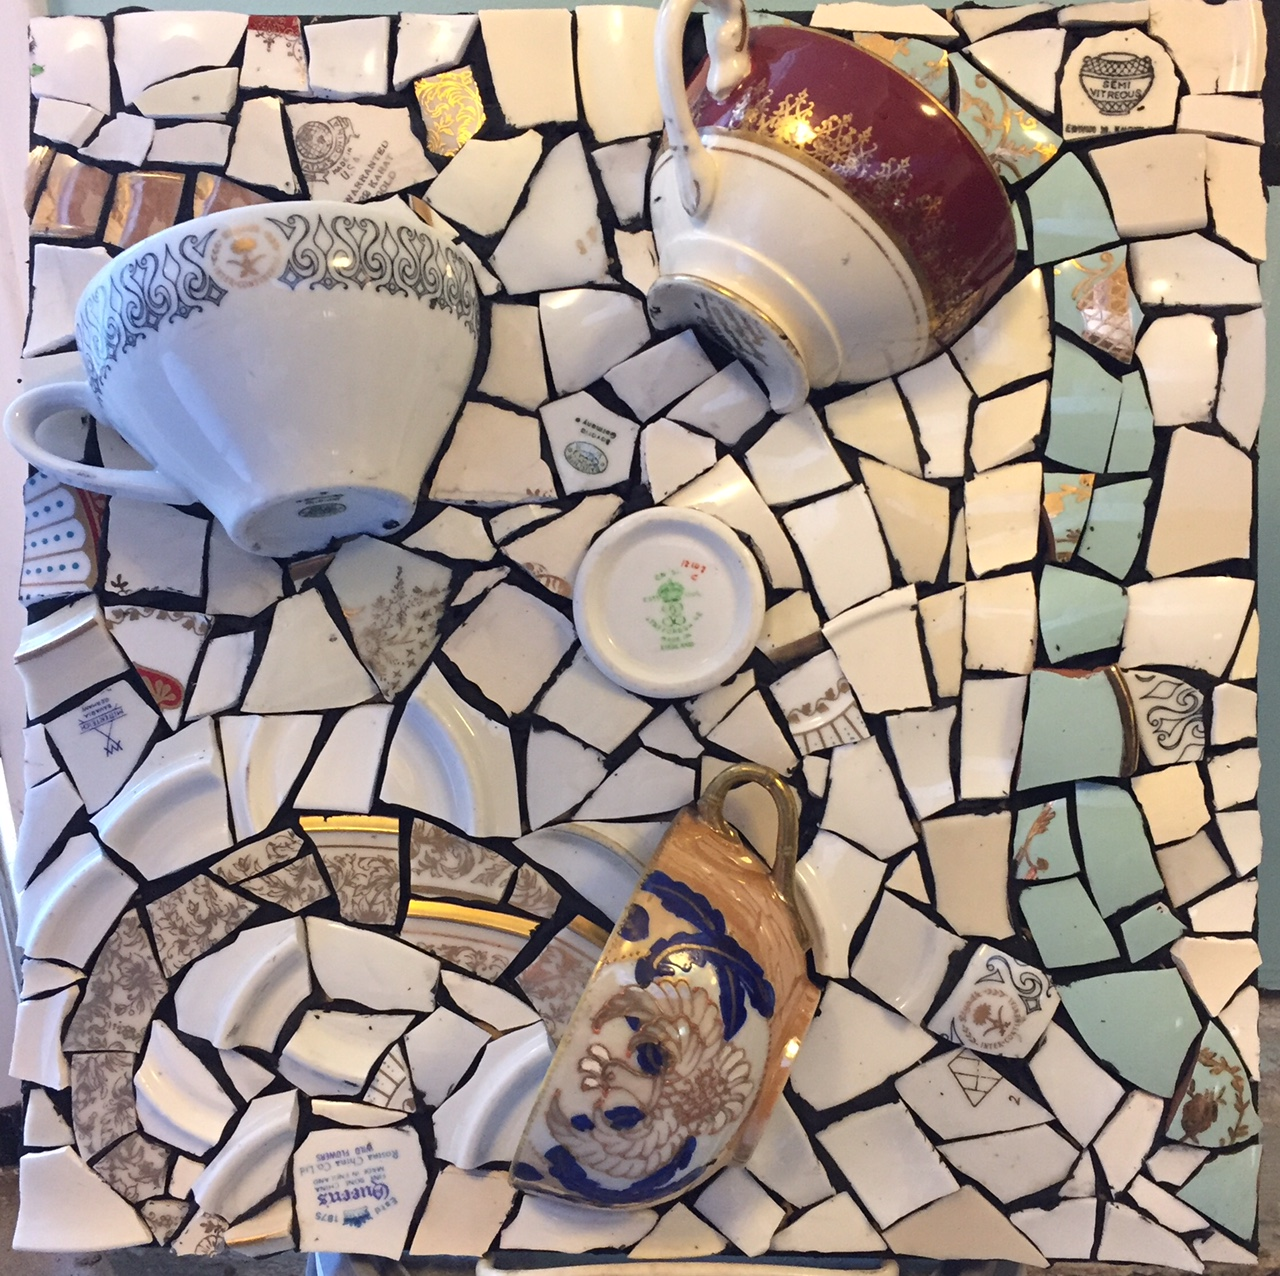 Kits - Mosaic DIY Project Kit - Funky Owl 30x30cm was listed for ...